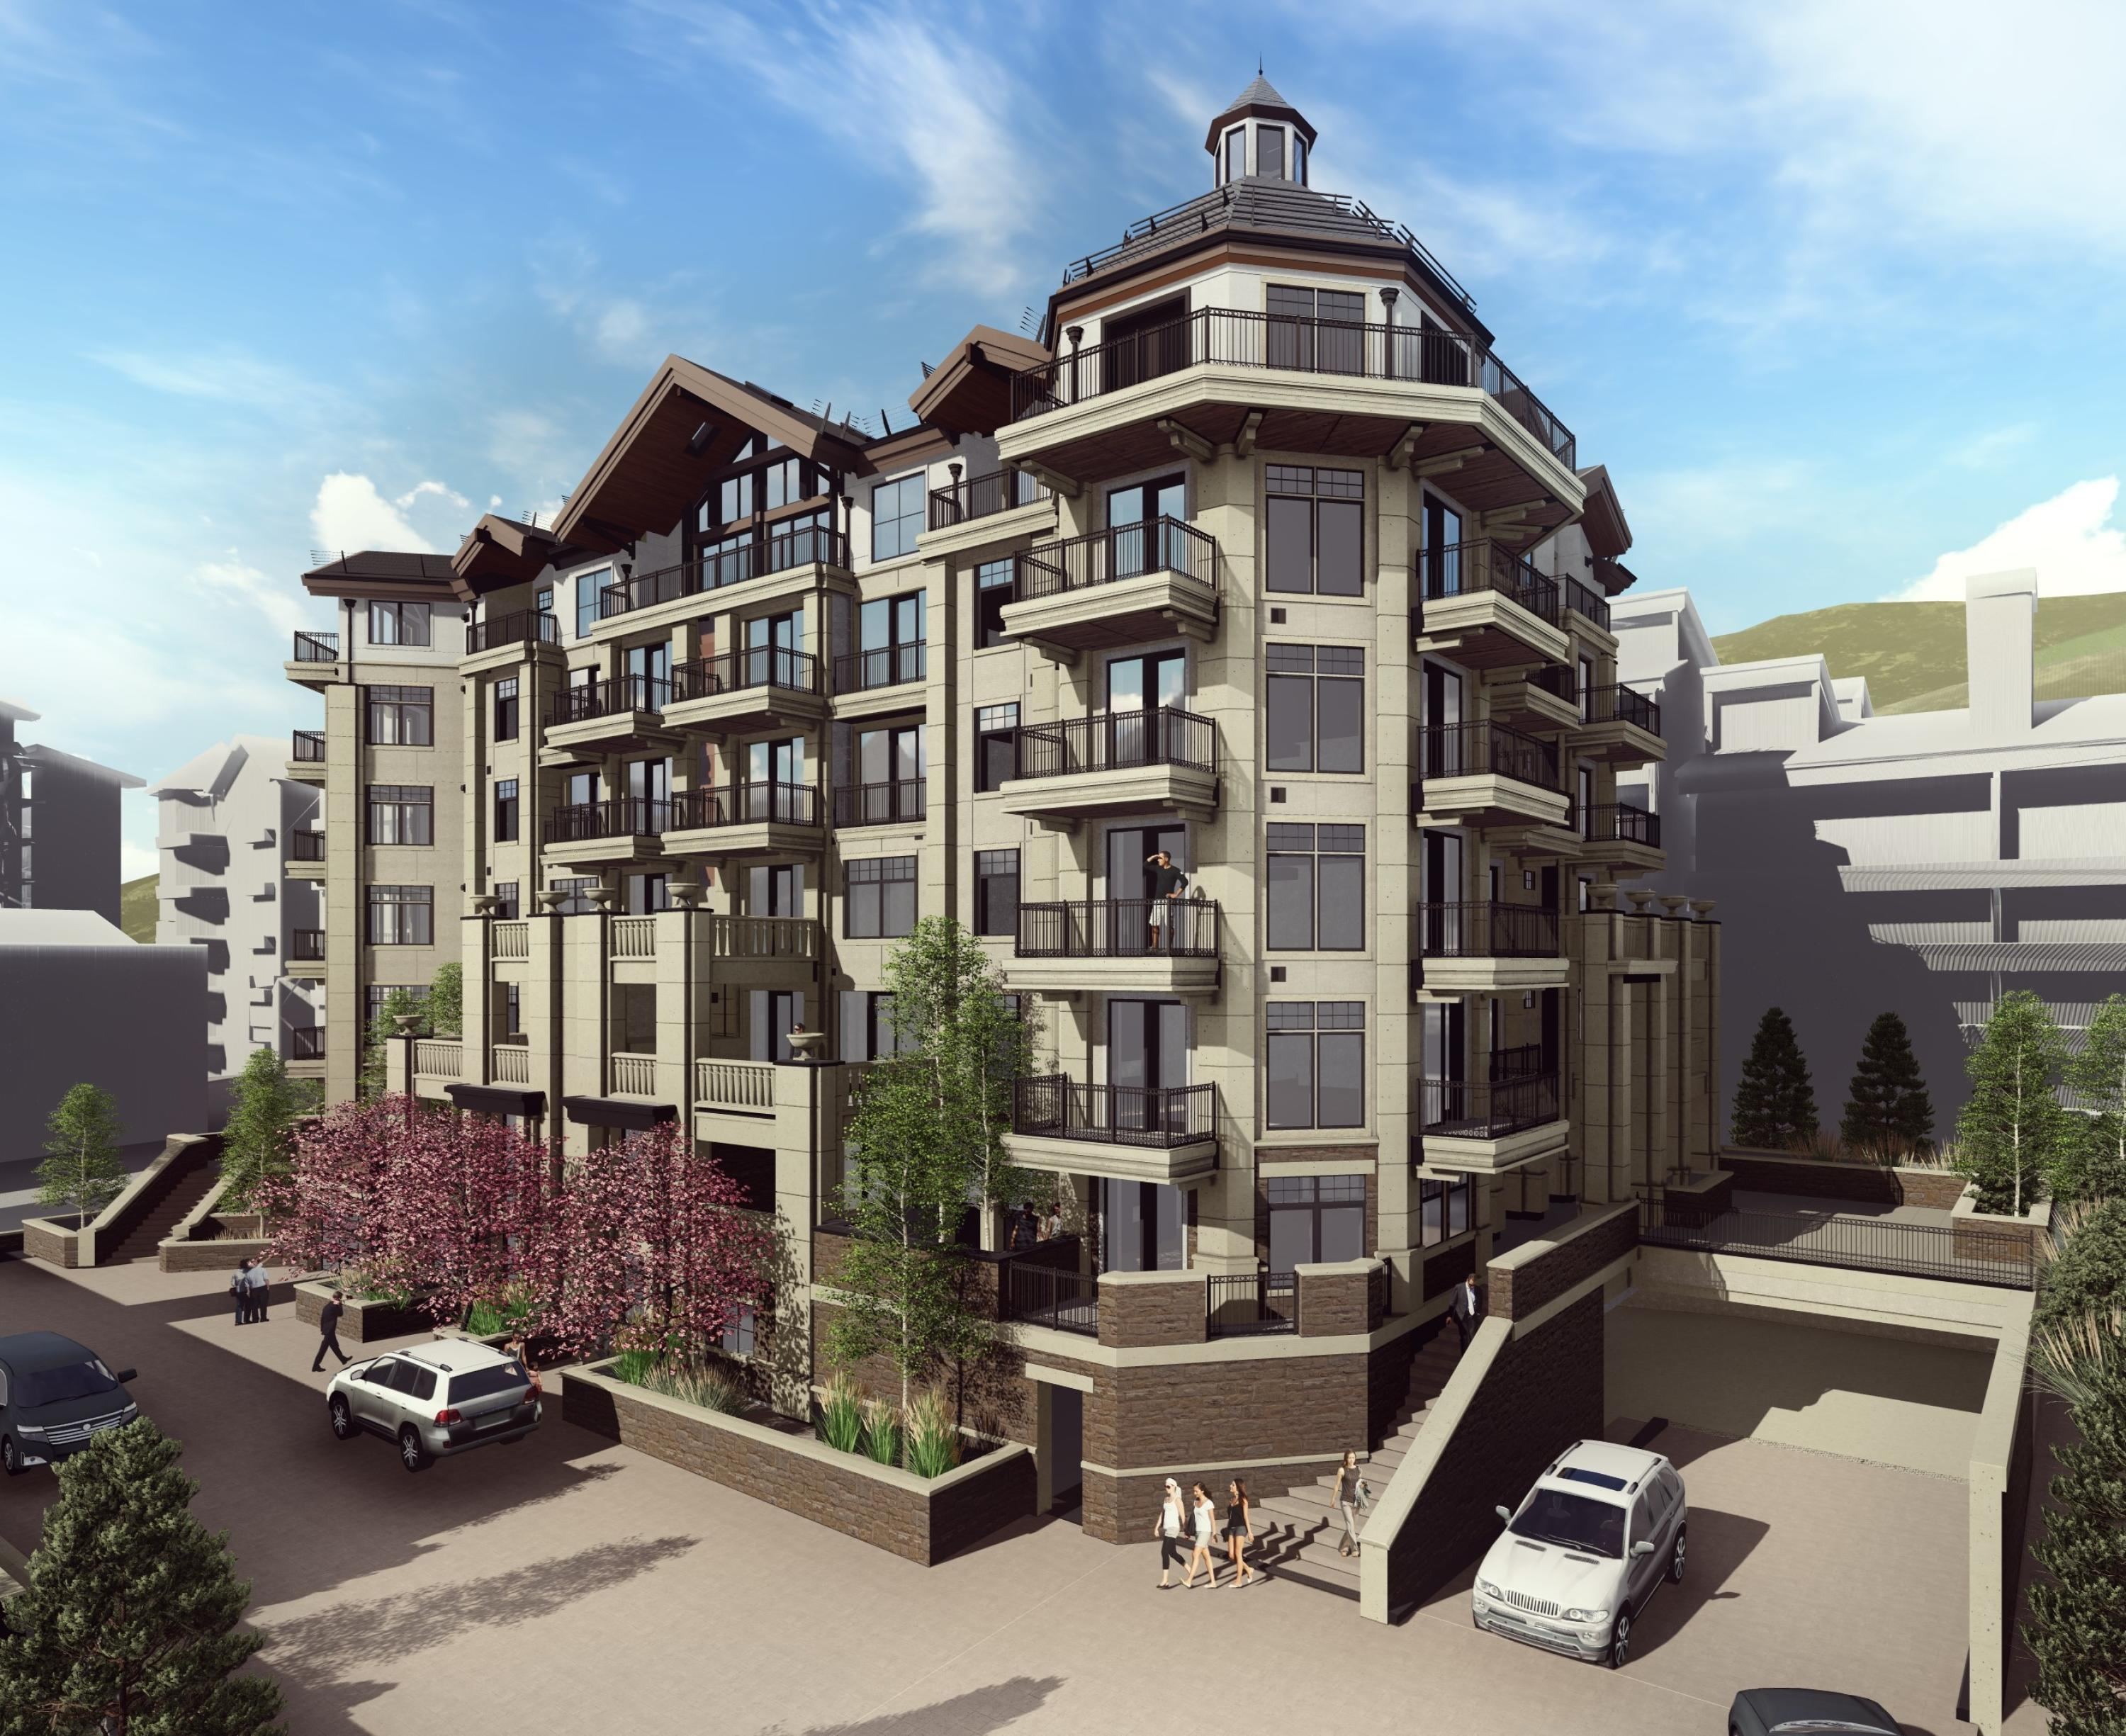 This collection of luxury residences in Vail's Lionshead Village are the very last of their kind. Sitting just moments away from Chair 8, Gondola II, and Ski School, yet tucked back in unparalleled seclusion from the bustling Lionshead community, Legacy at Vail Square is truly a property like no other. With panoramic views of Vail mountain, and world-class amenities this property offers a once-in-a-lifetime opportunity to stake your claim in Colorado's greatest mountain resort.